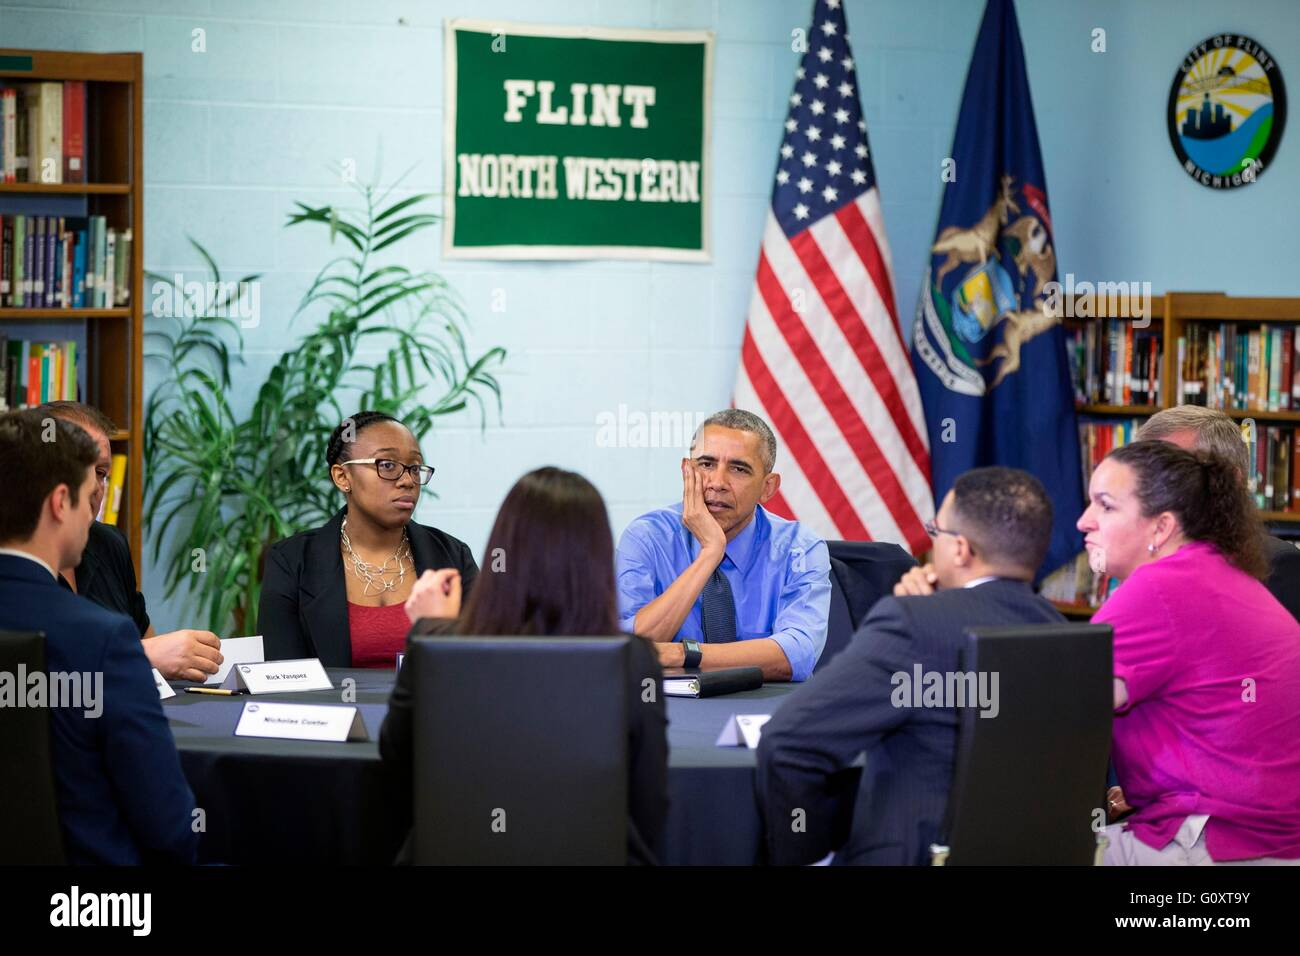 U.S President Barack Obama participates in a roundtable on the Flint water crisis at Northwestern High School May - Stock Image